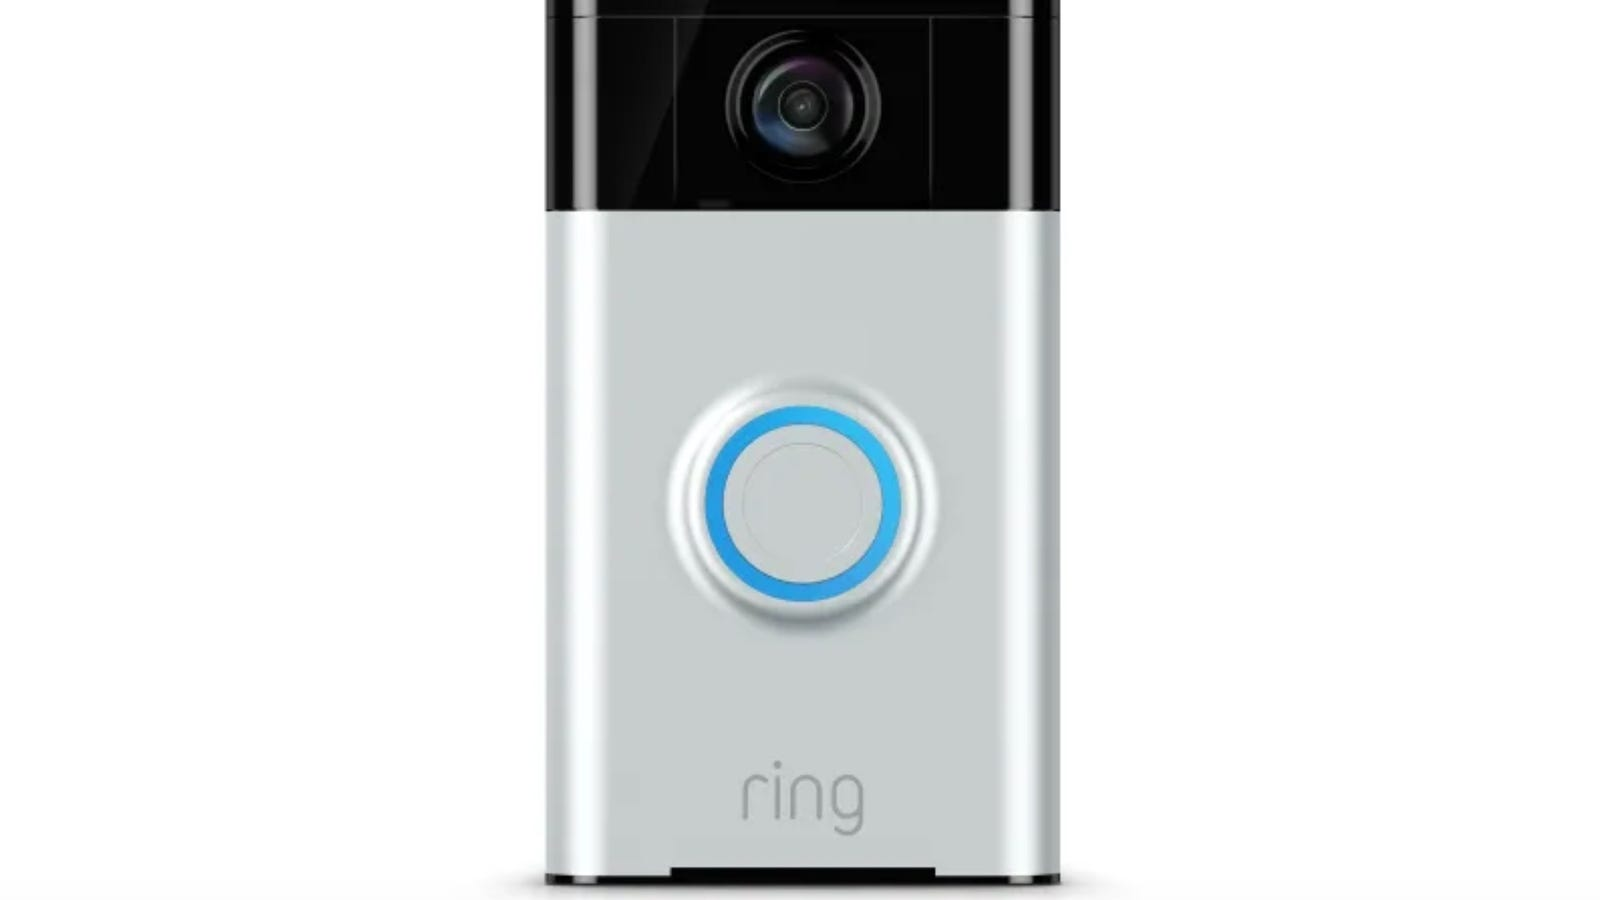 photo image Amazon's Ring Security Cameras May Have Let Employees Spy on Customers: Report